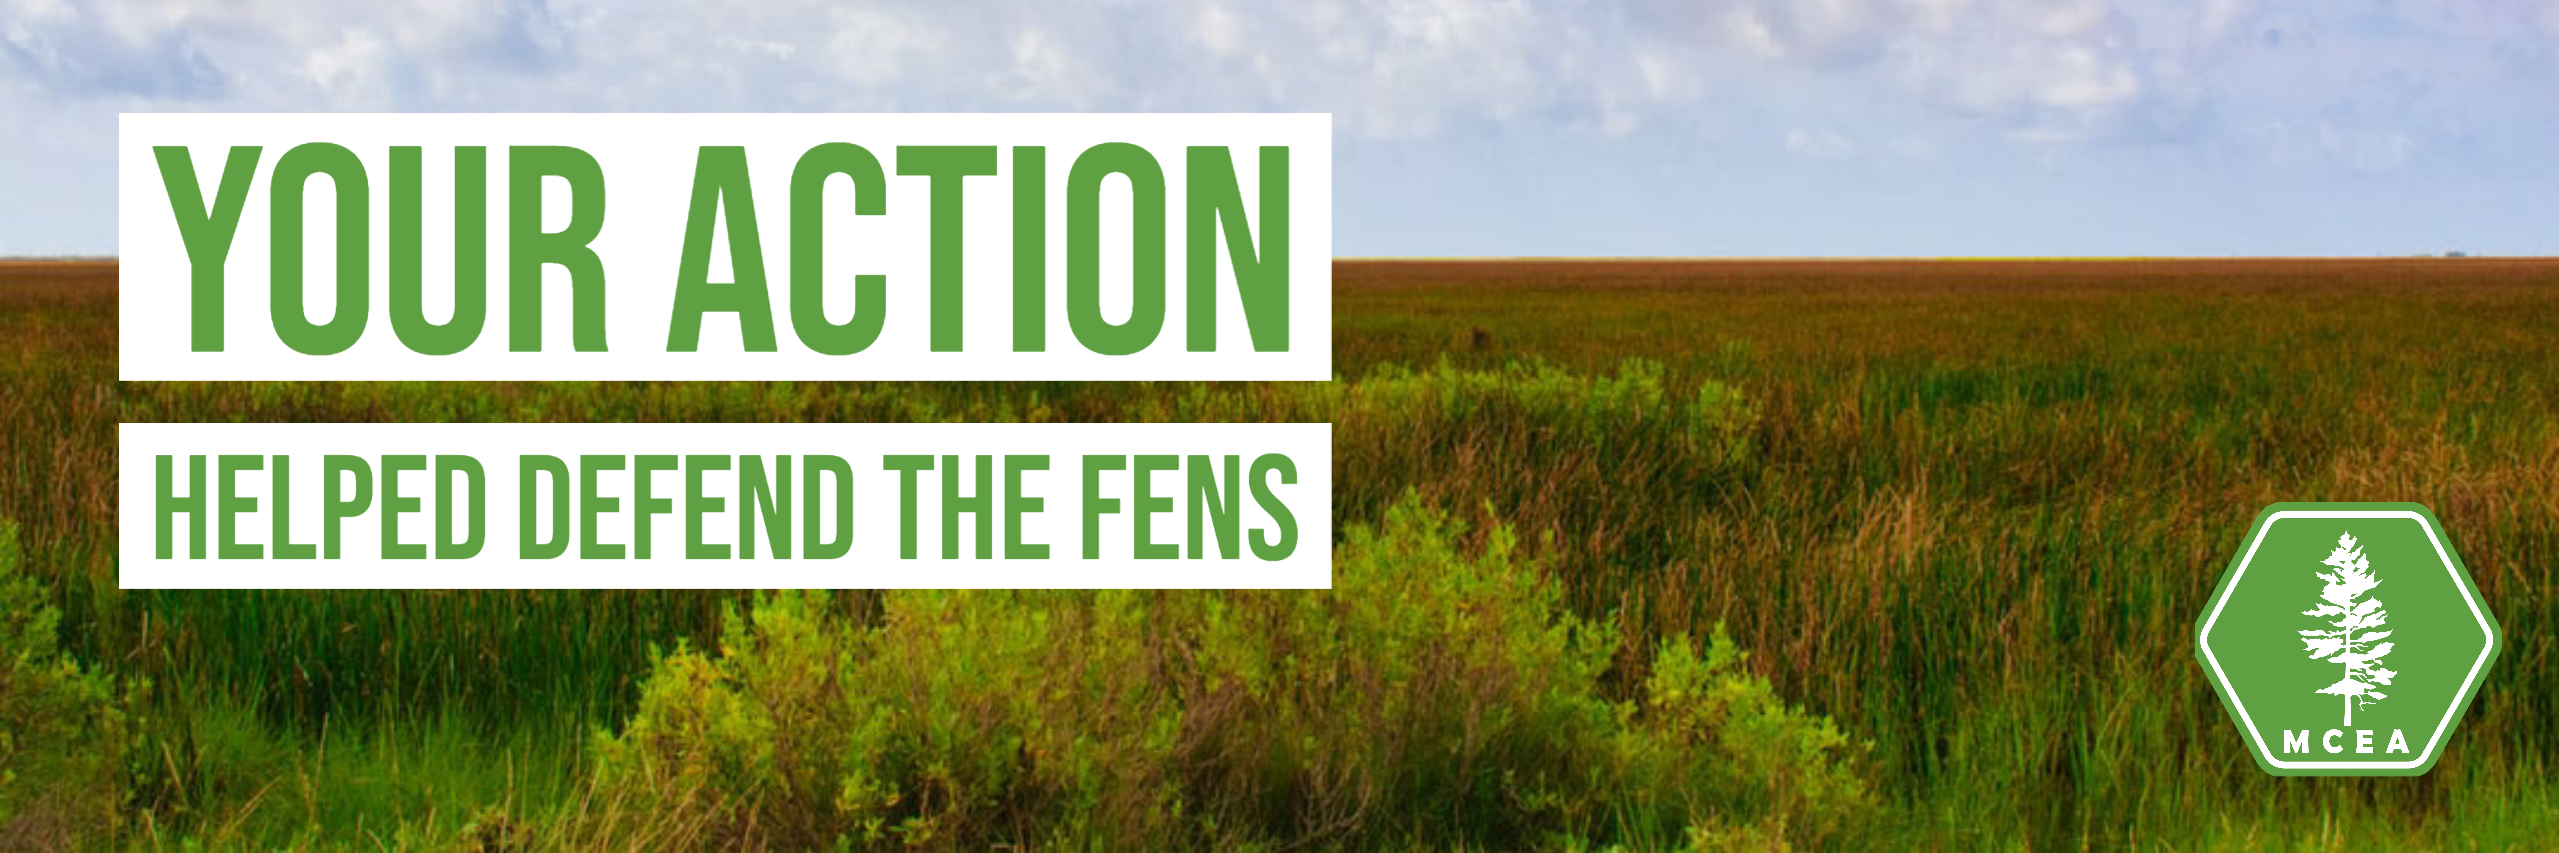 Your action helped defend the fens